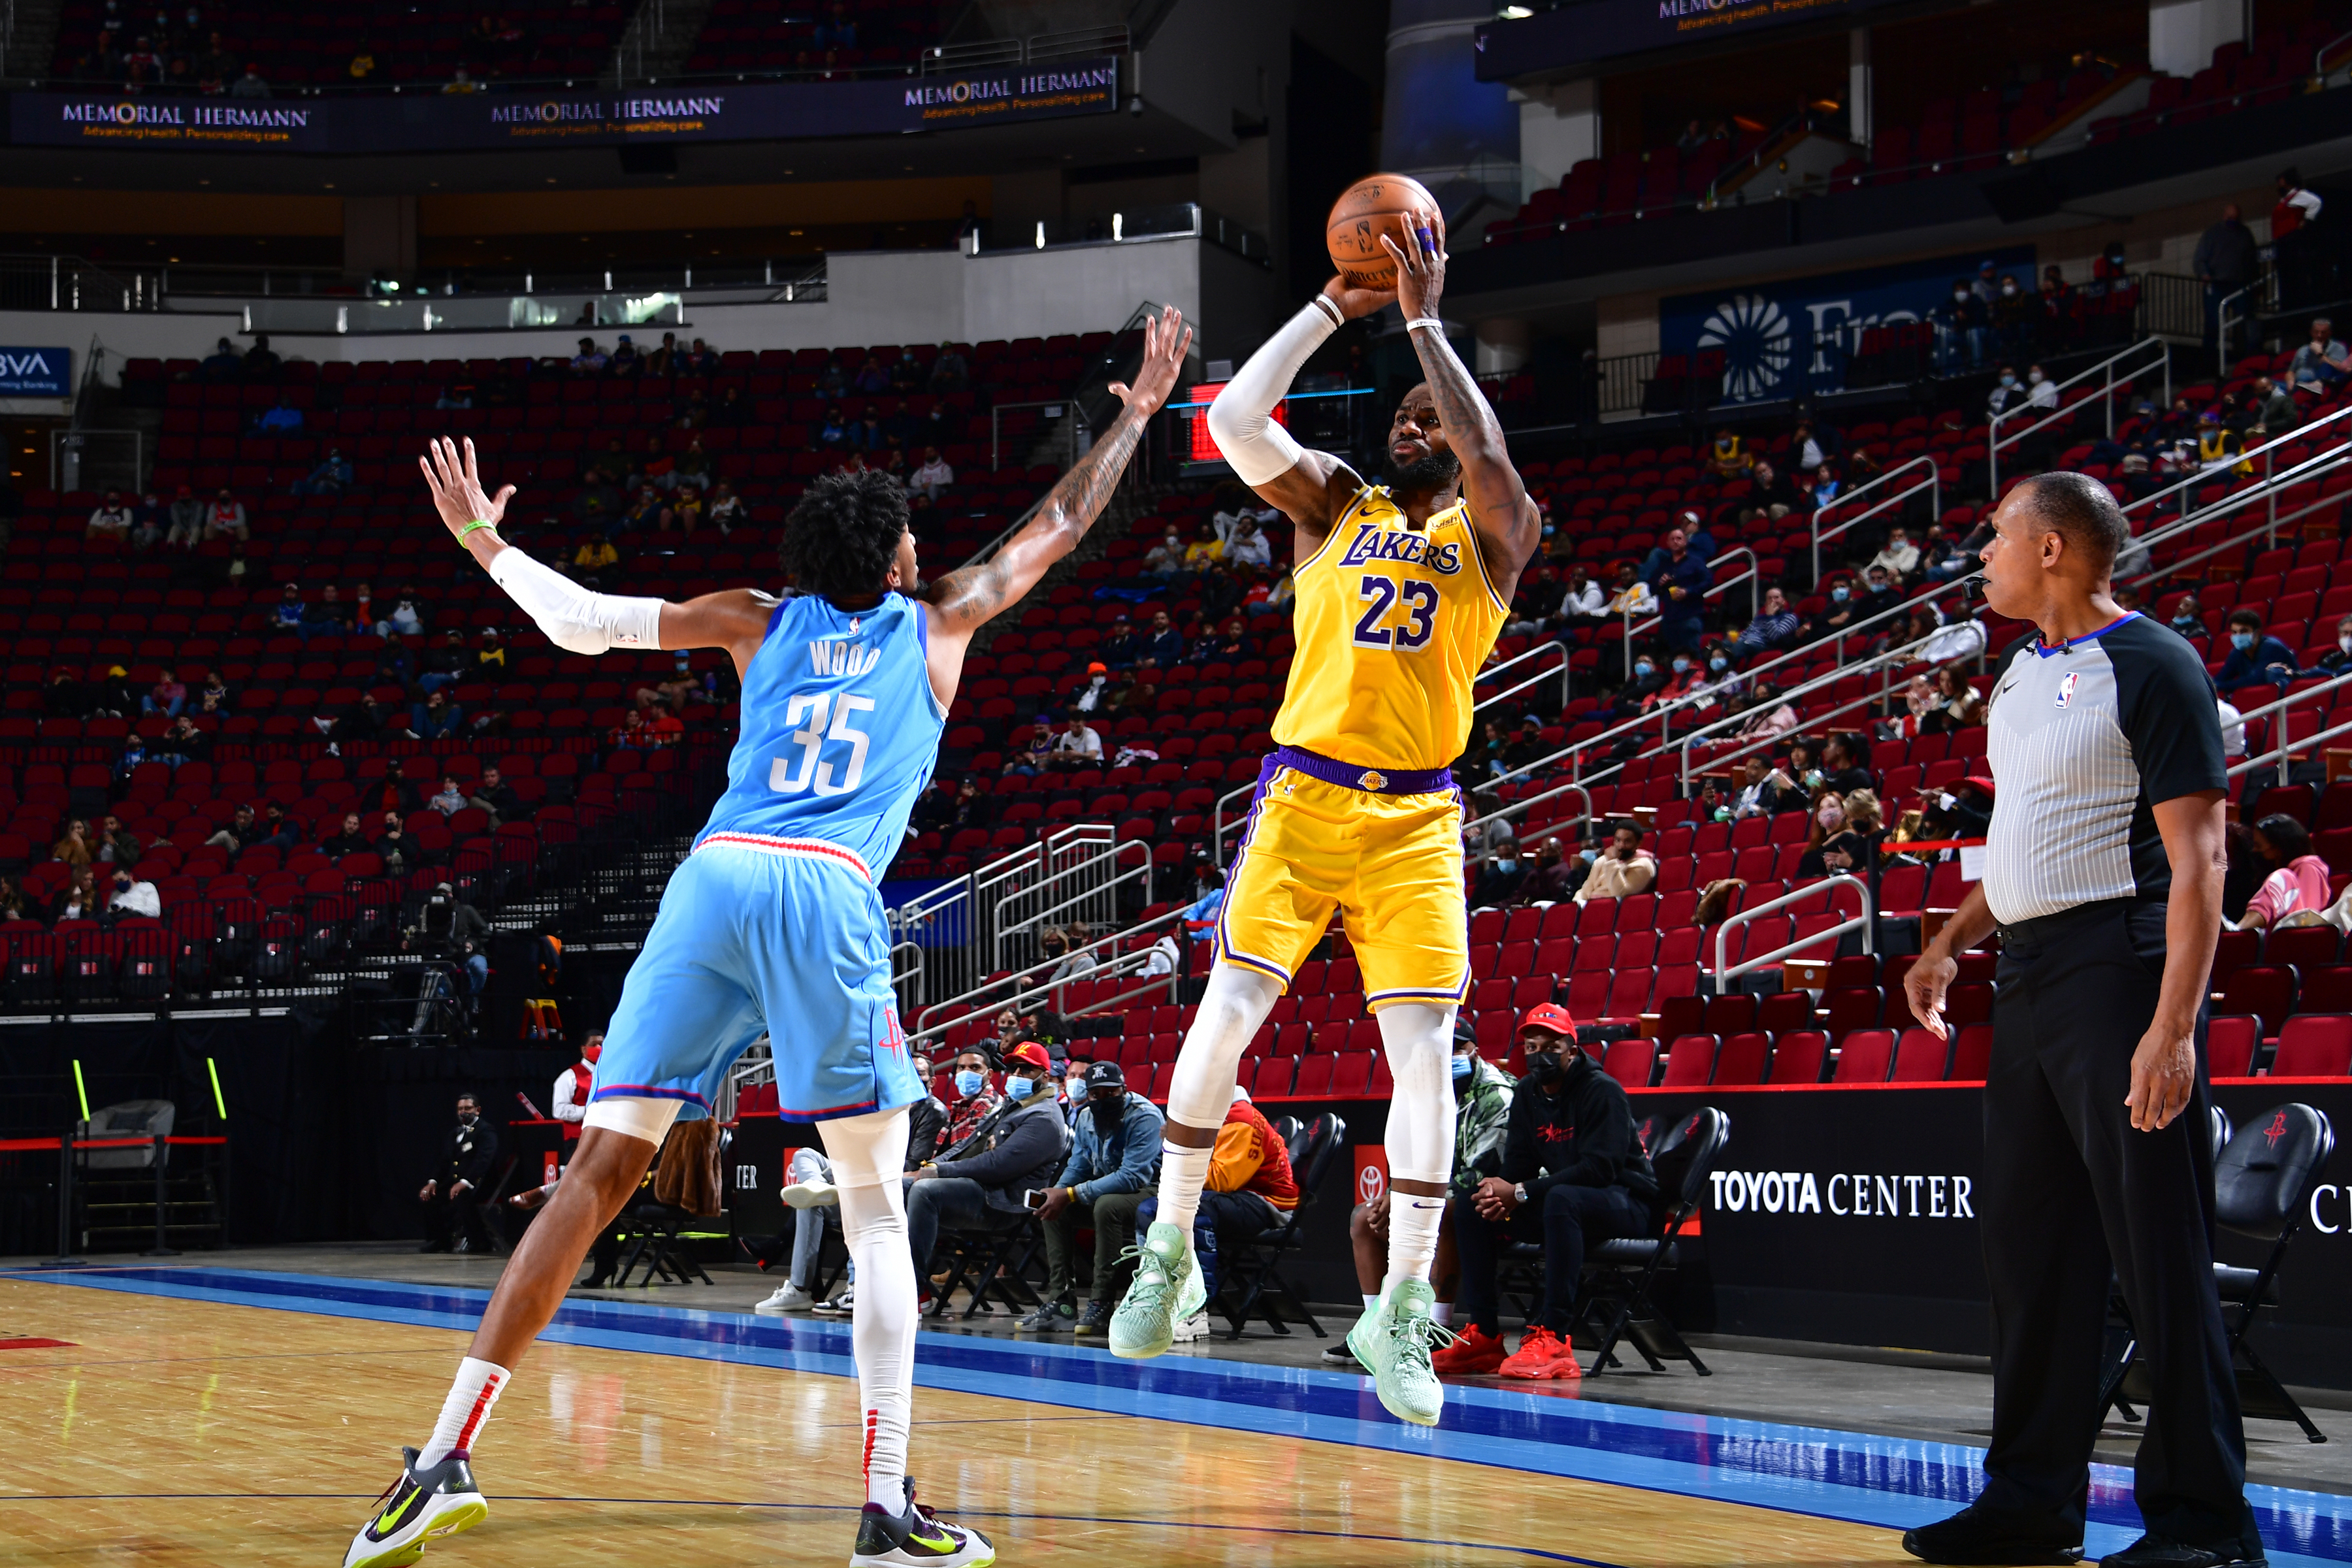 LeBron James Scores 26 as Lakers Roll Over Rockets 117-100